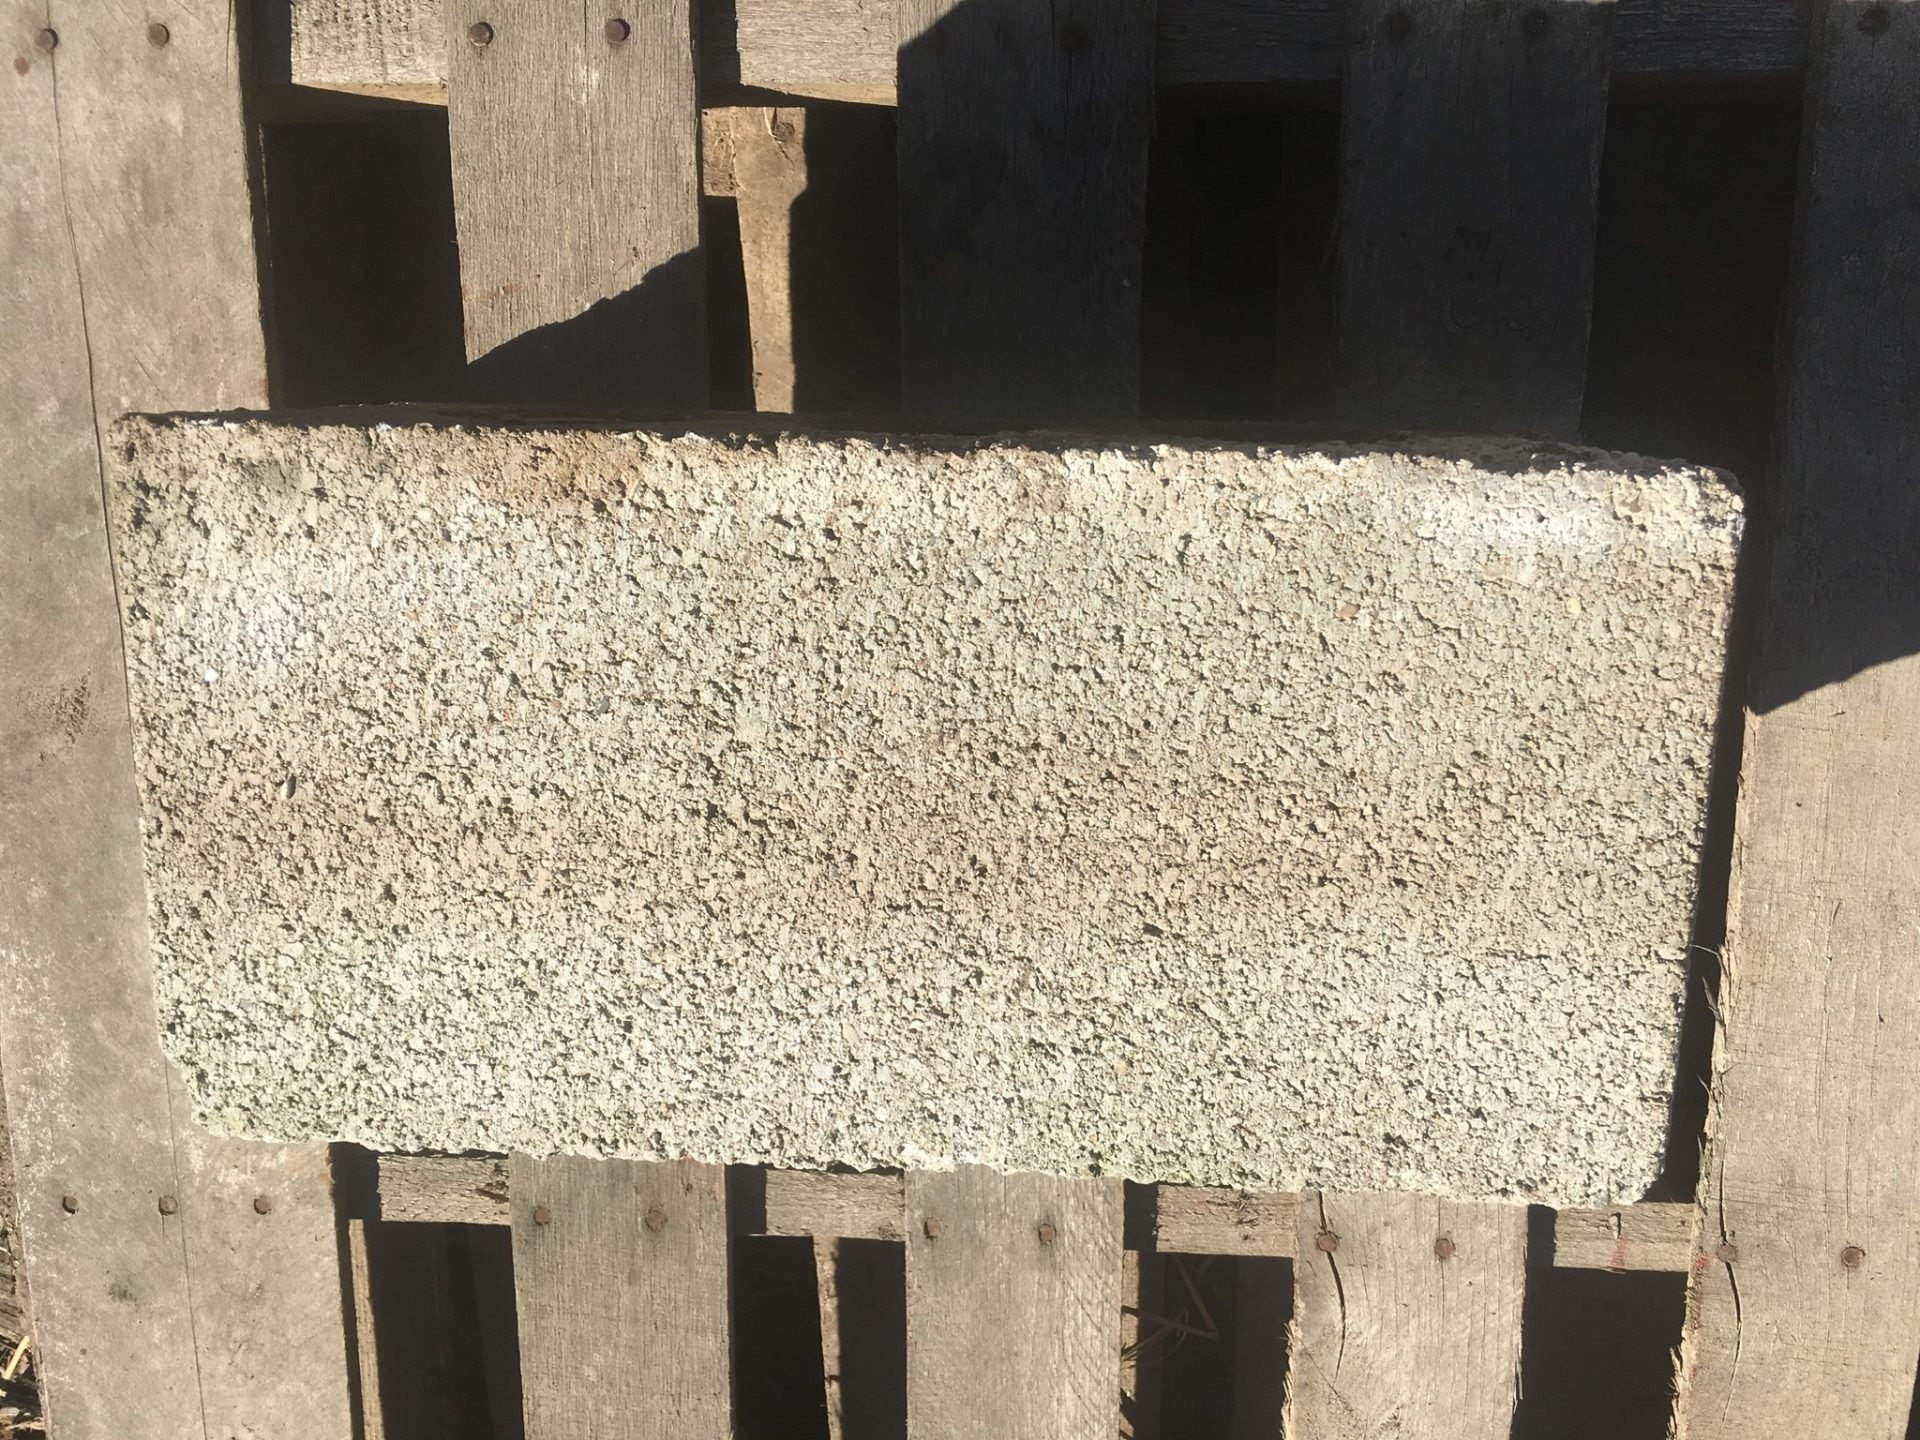 CONCRETE BLOCKS 3